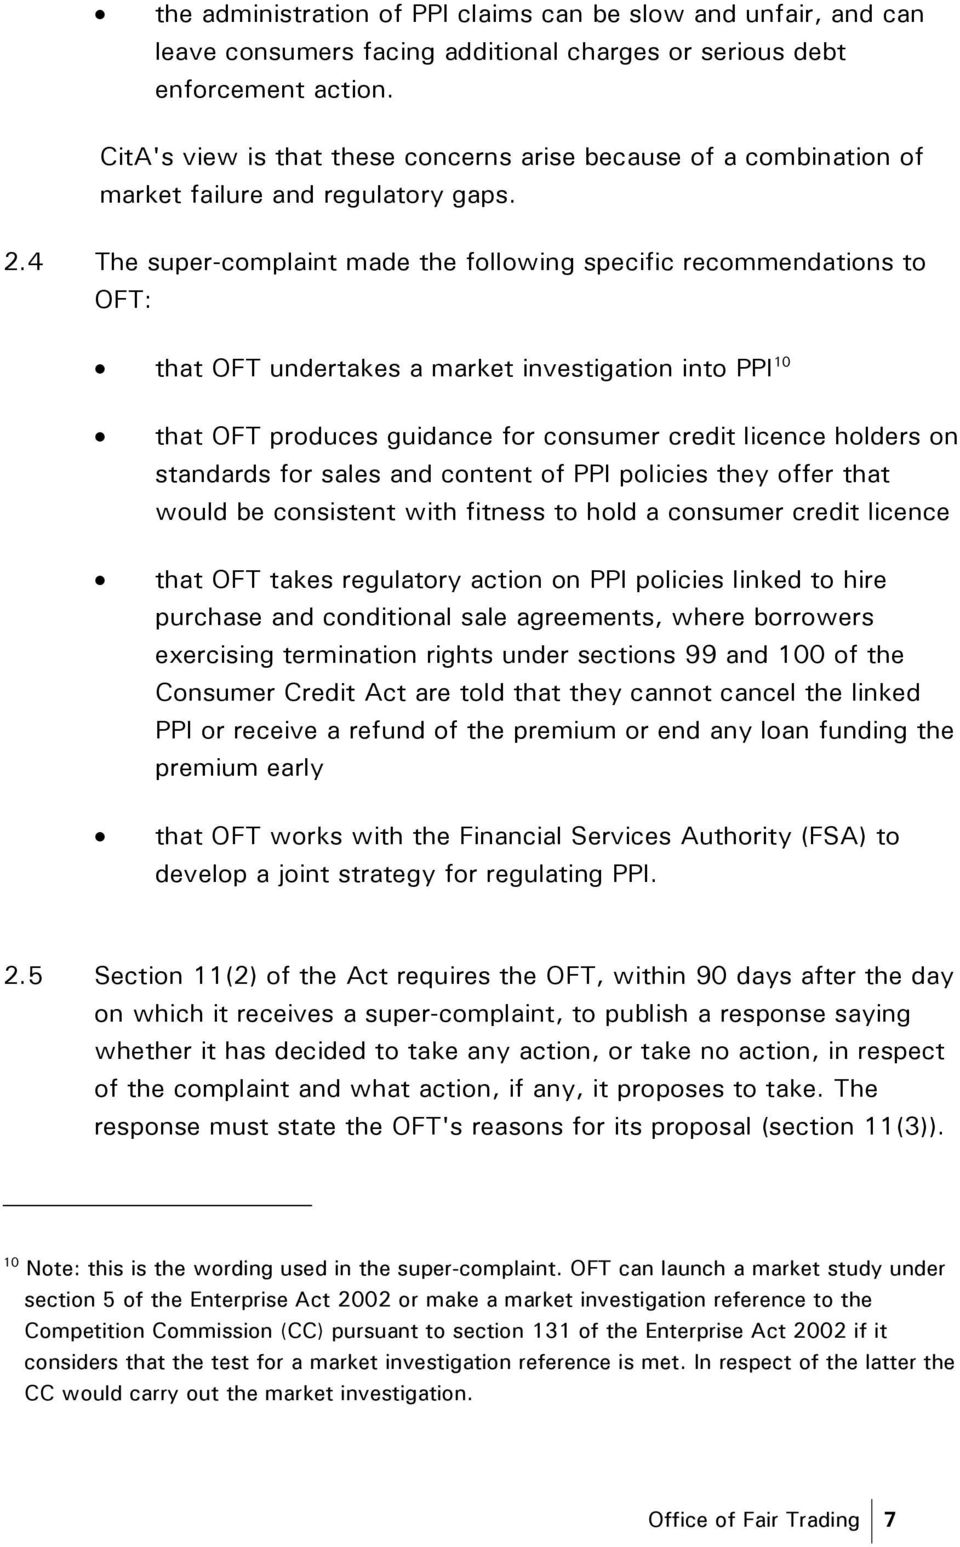 4 The super-complaint made the following specific recommendations to OFT: that OFT undertakes a market investigation into PPI 10 that OFT produces guidance for consumer credit licence holders on